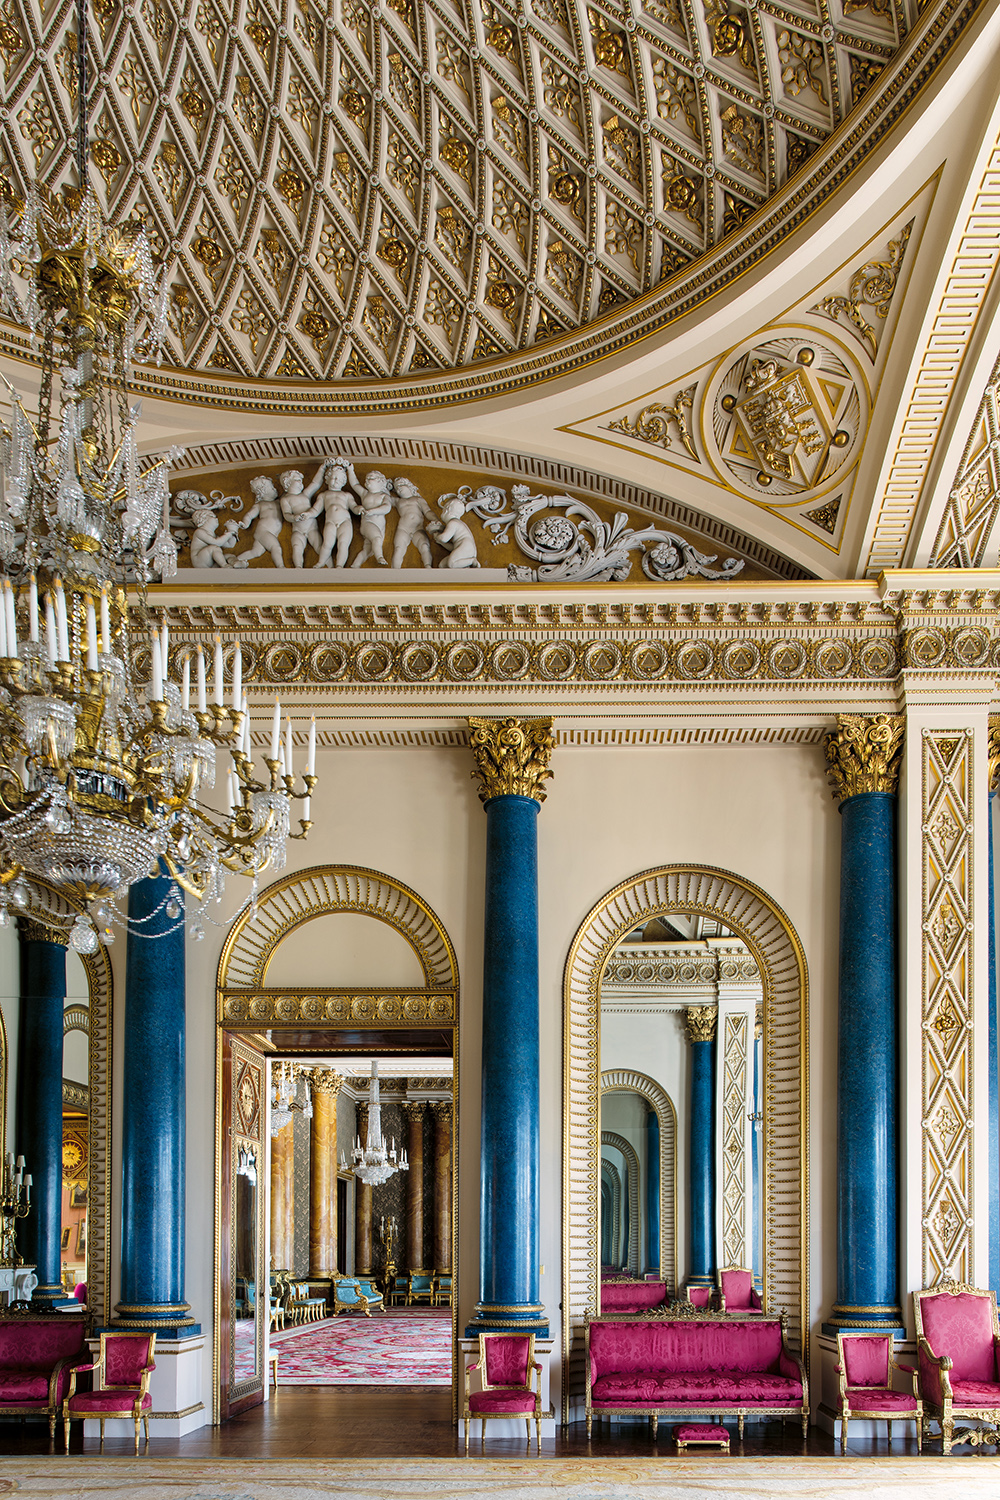 Get A Rare Glimpse Of The Royal Family's Private Rooms At